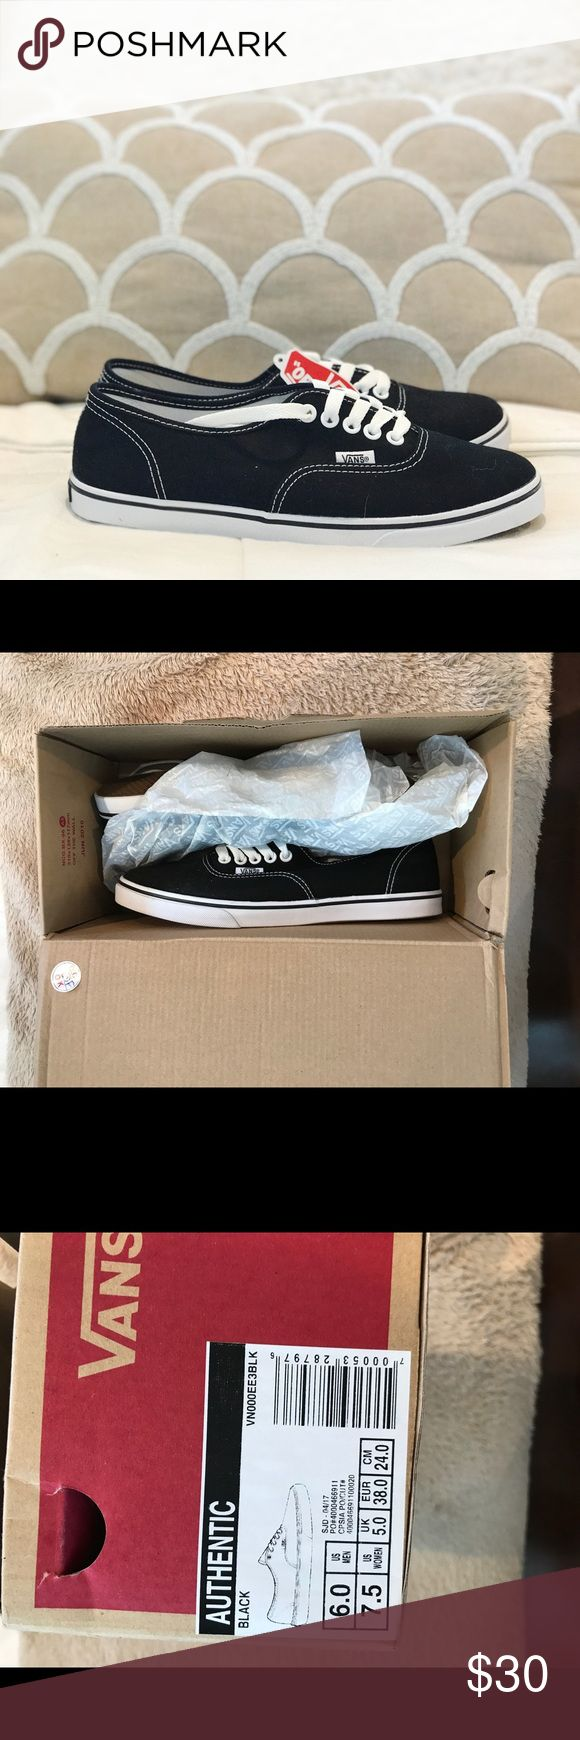 Black vans Bought these shoes and they didn't fit. They are completely new, never been worn. Vans Shoes Sneakers